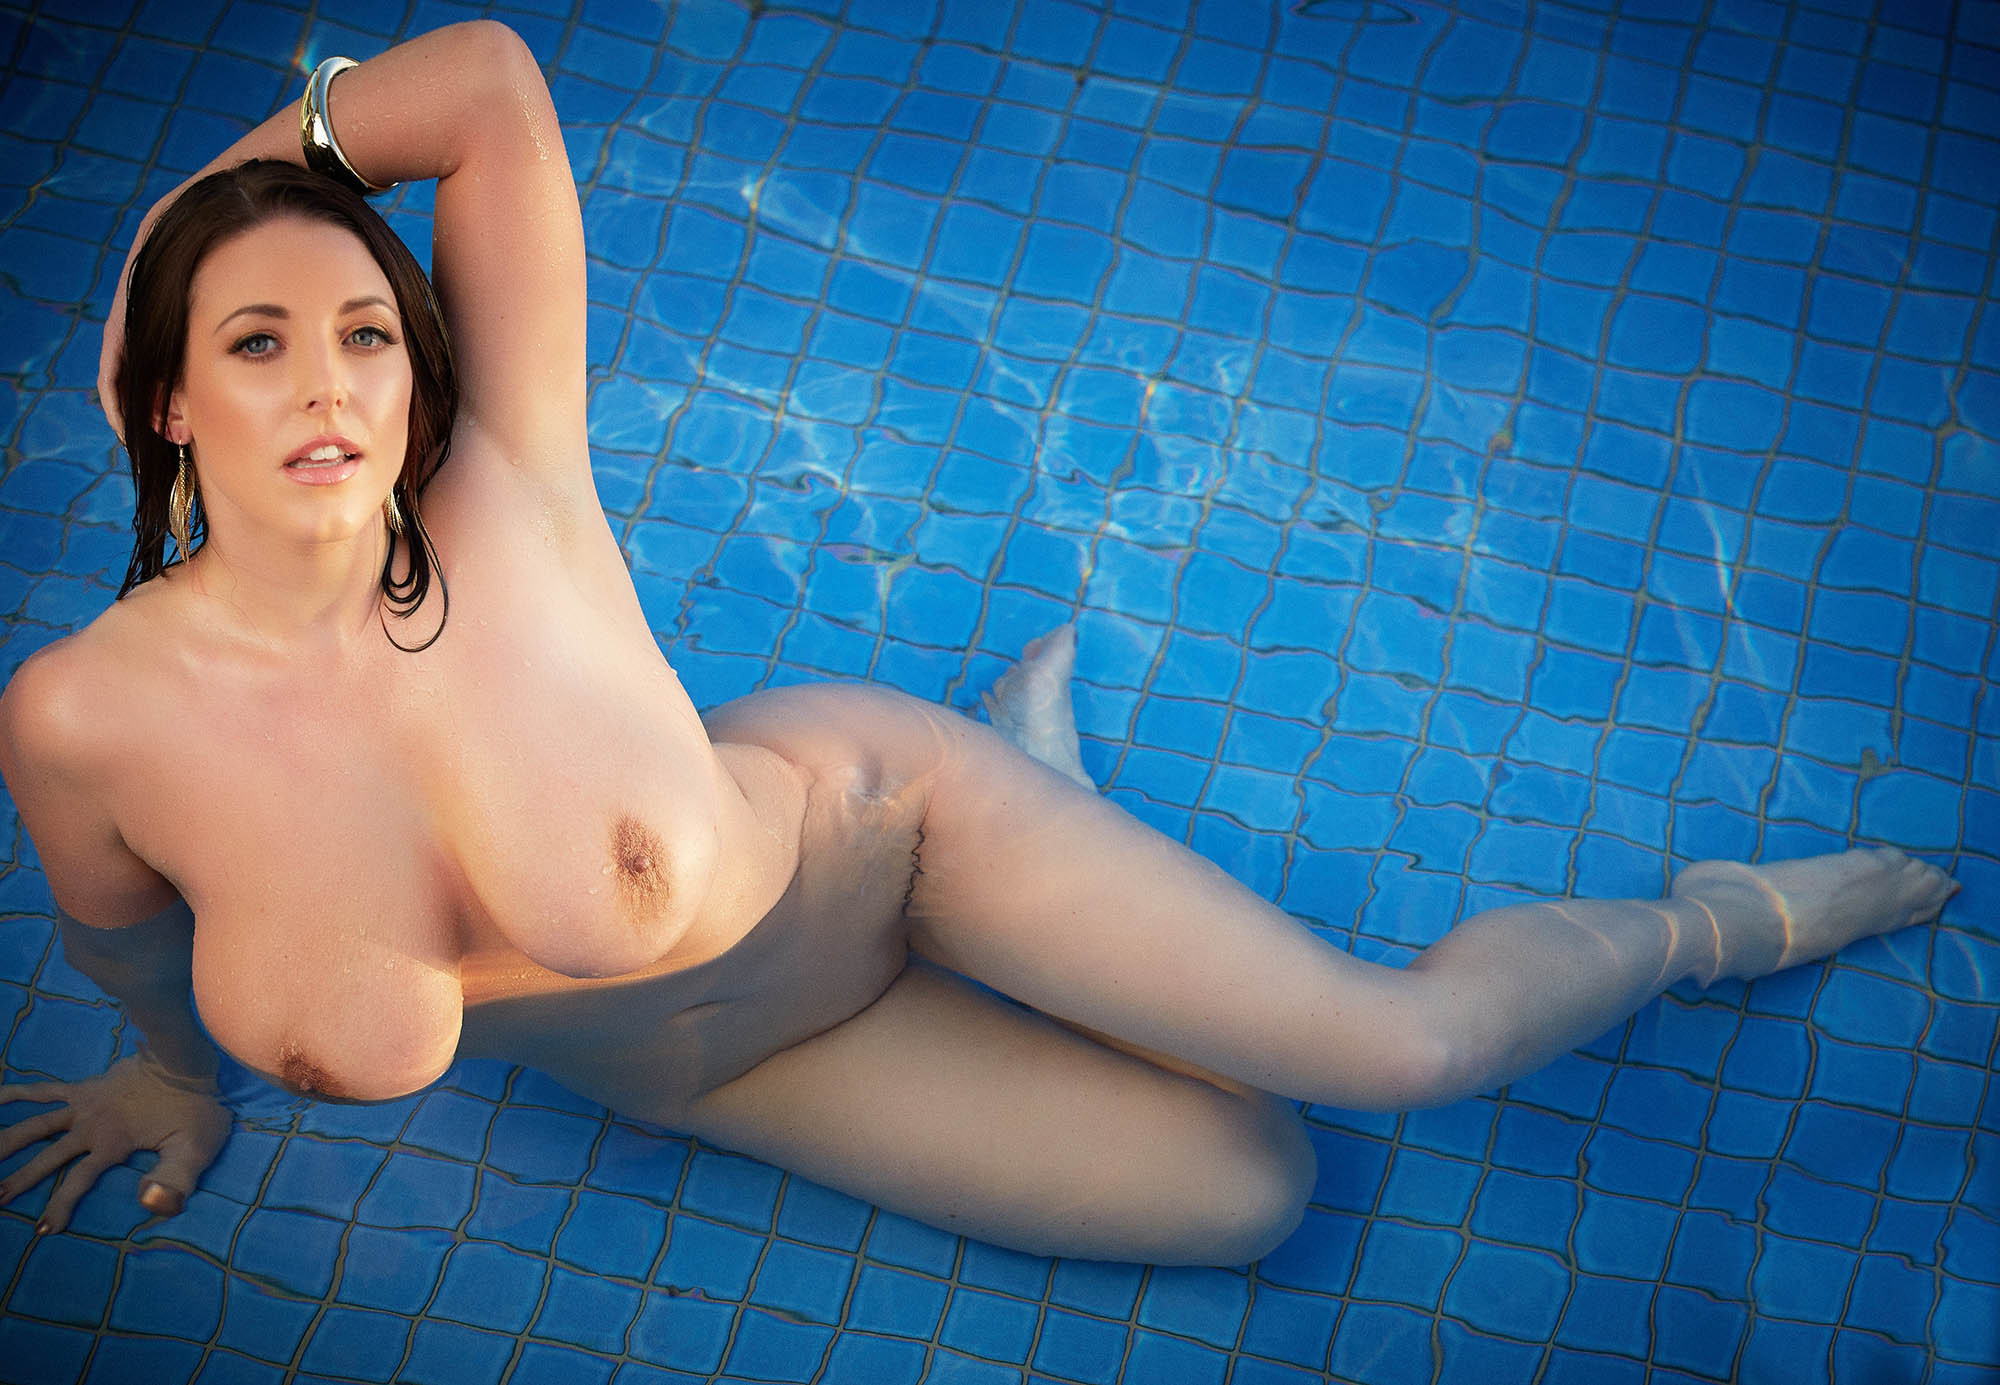 Angela White High Quality Wallpapers